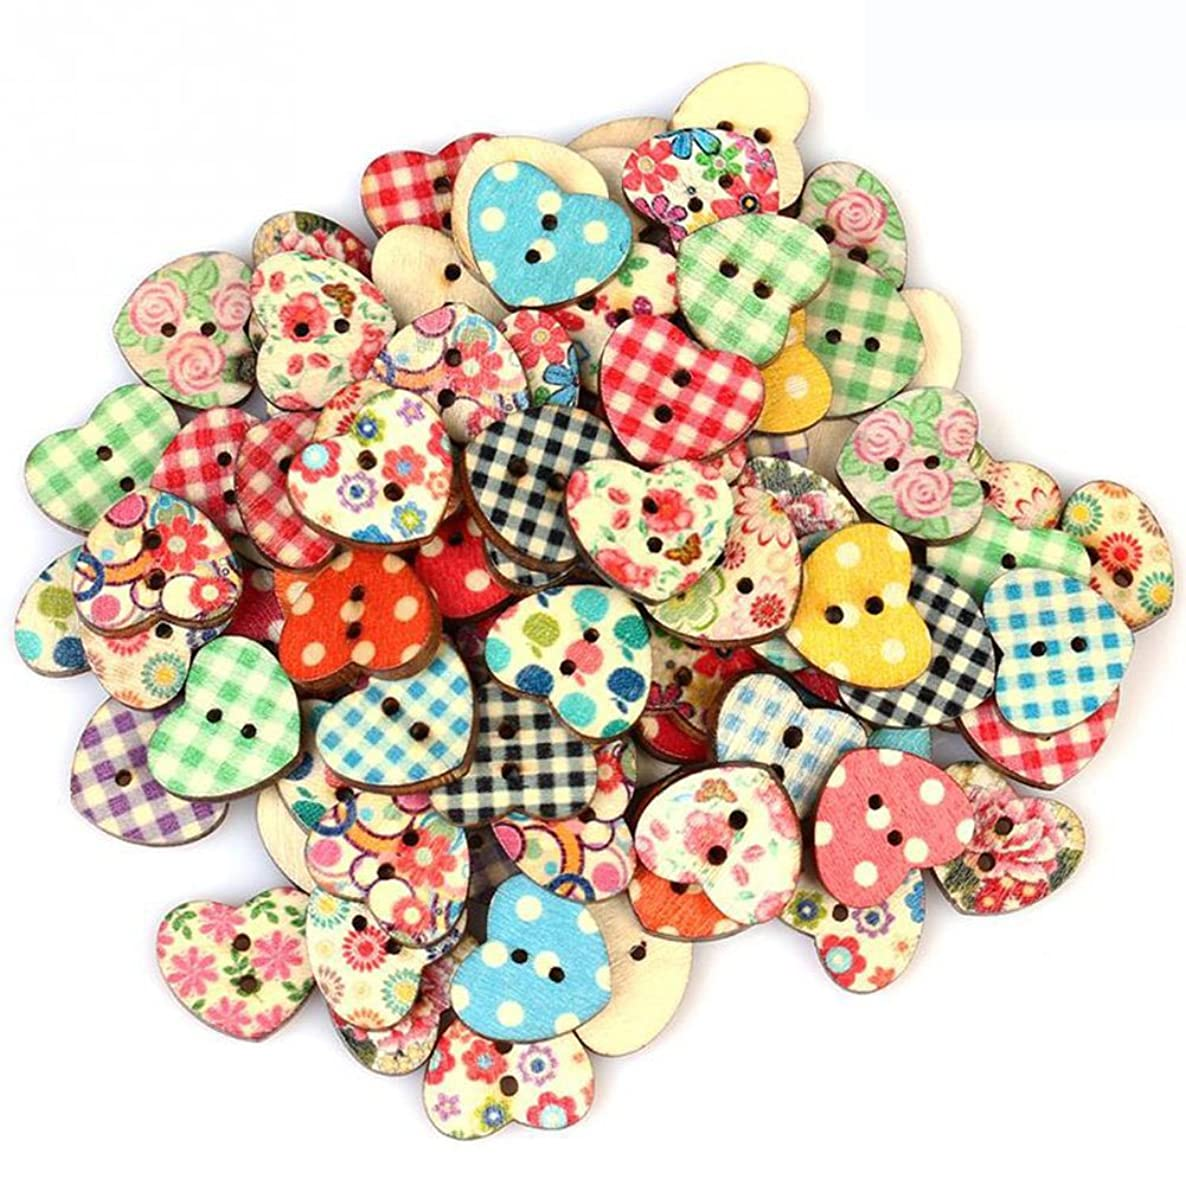 WINGONEER 200pcs Multicolored Heart Shaped Wooden Buttons Sewing Craft Scrapbooking